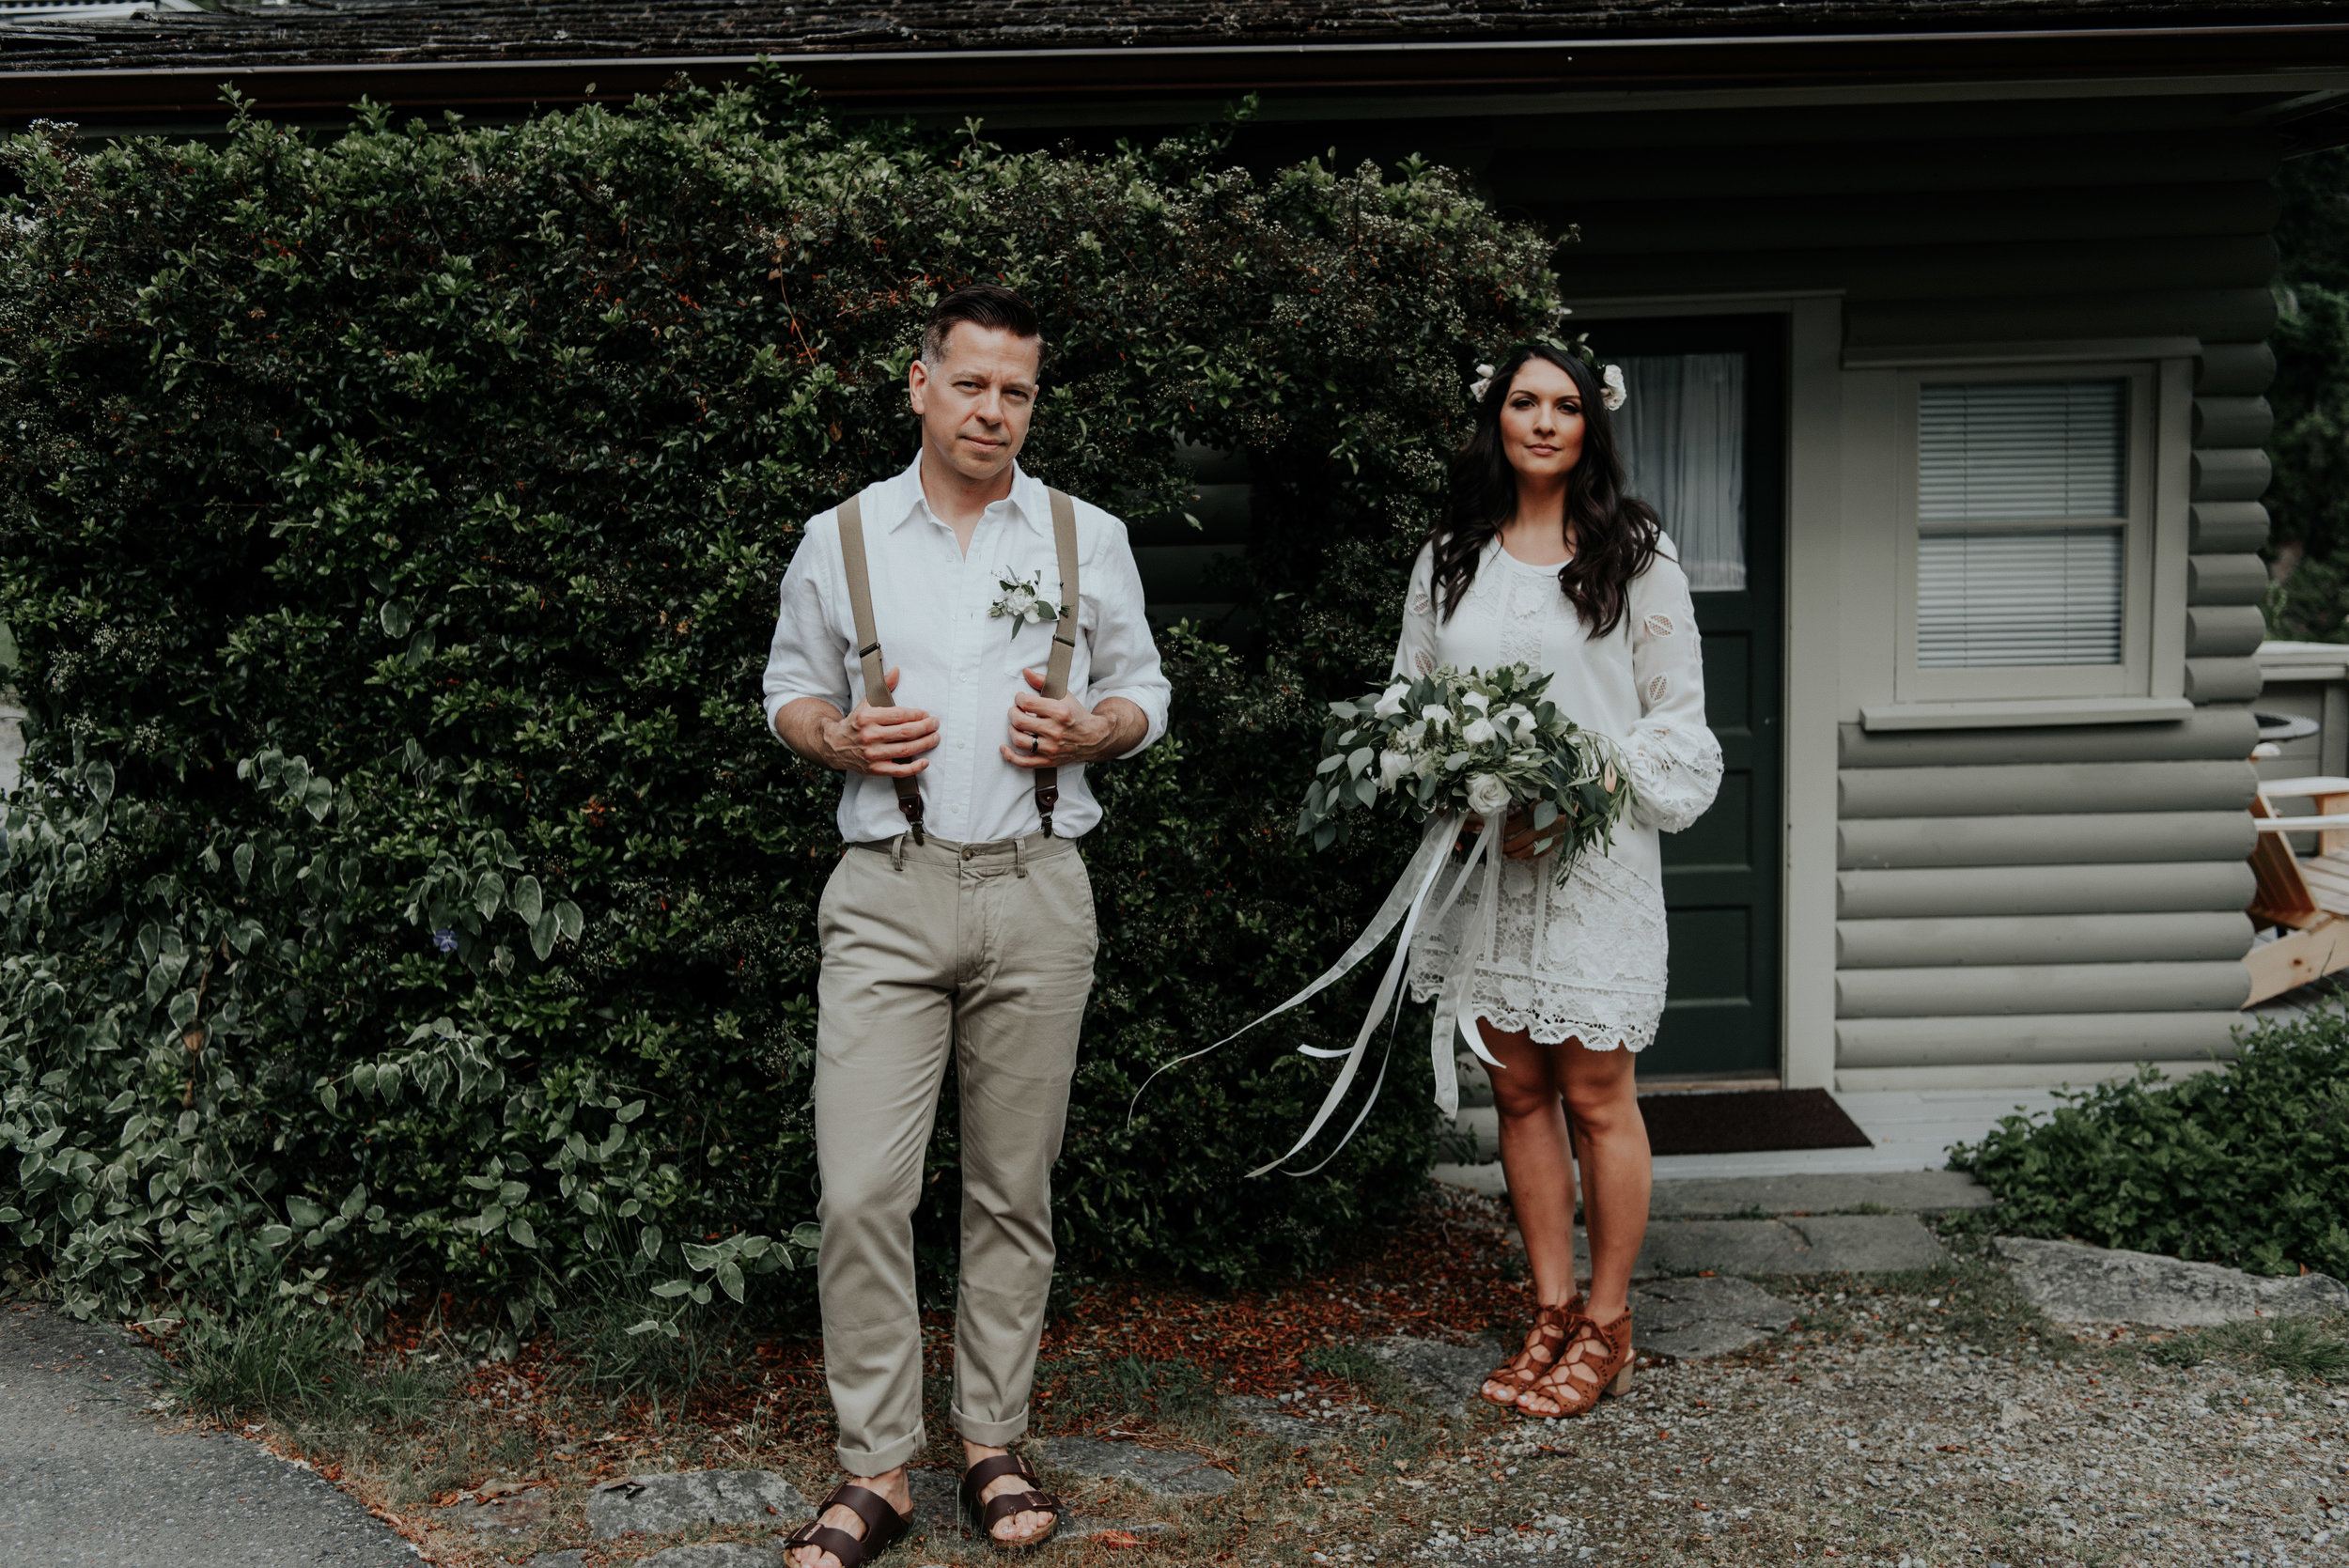 Ashley + Jeff - Rockwater Resort Elopement - Sunshine Coast BC Photographer - Laura Olson Photography-4067.jpg